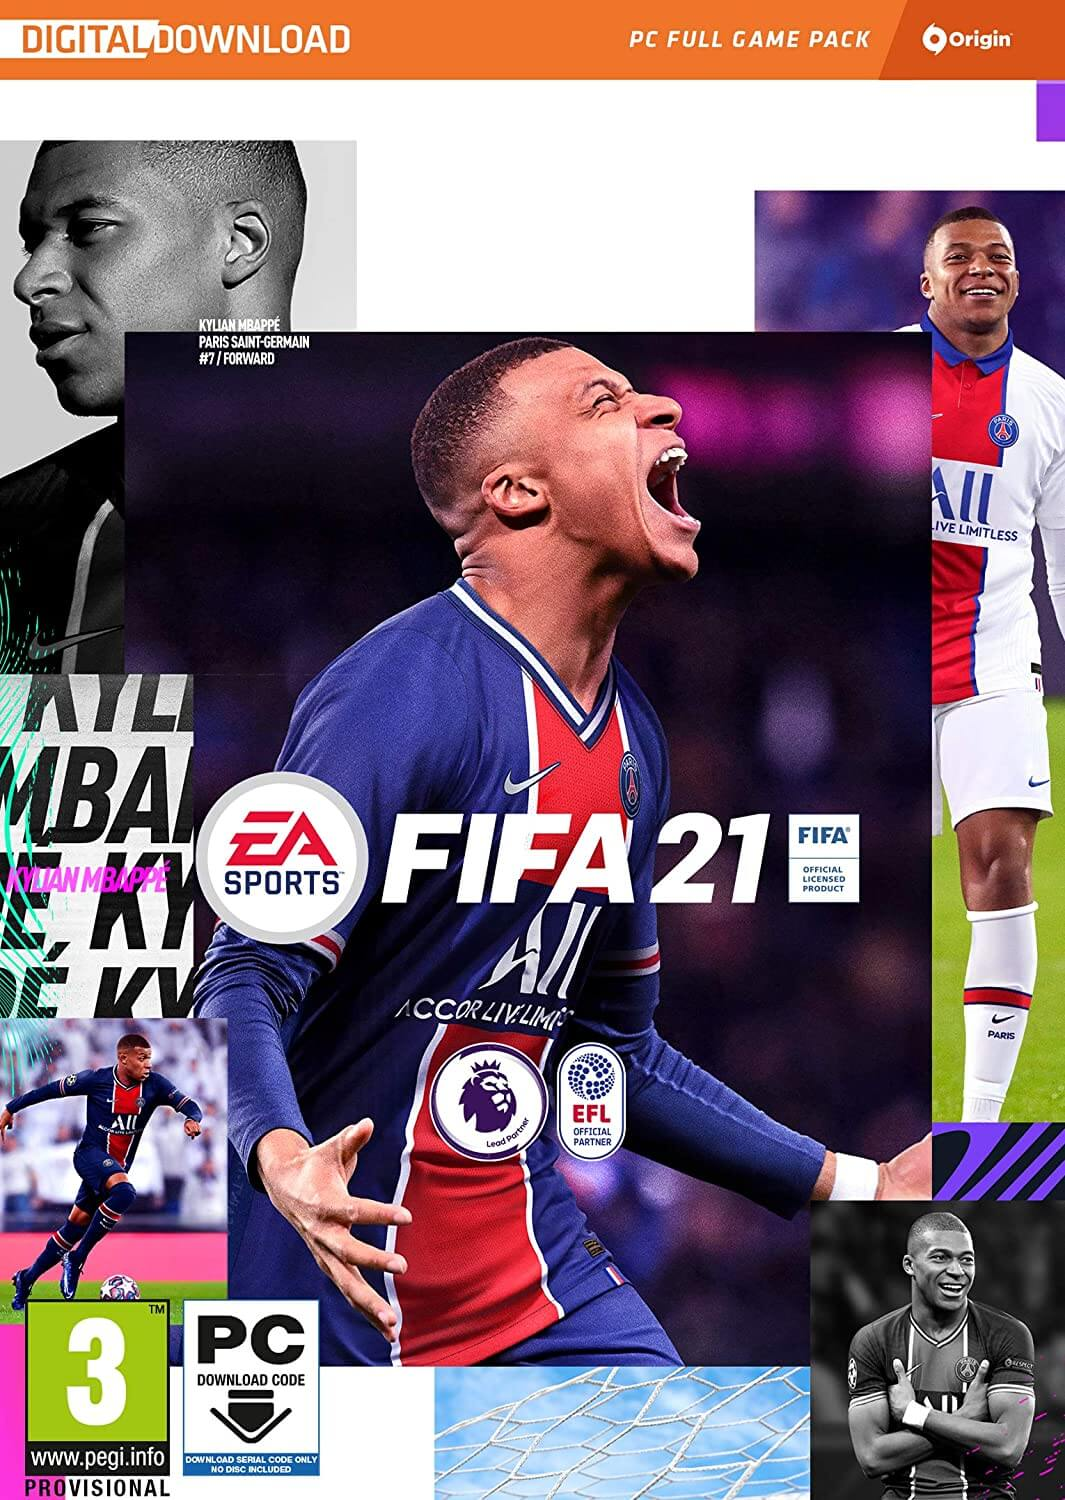 https://img5.downloadha.com/hosein/files/2020/10/FIFA-21-pc-cover-large.jpg